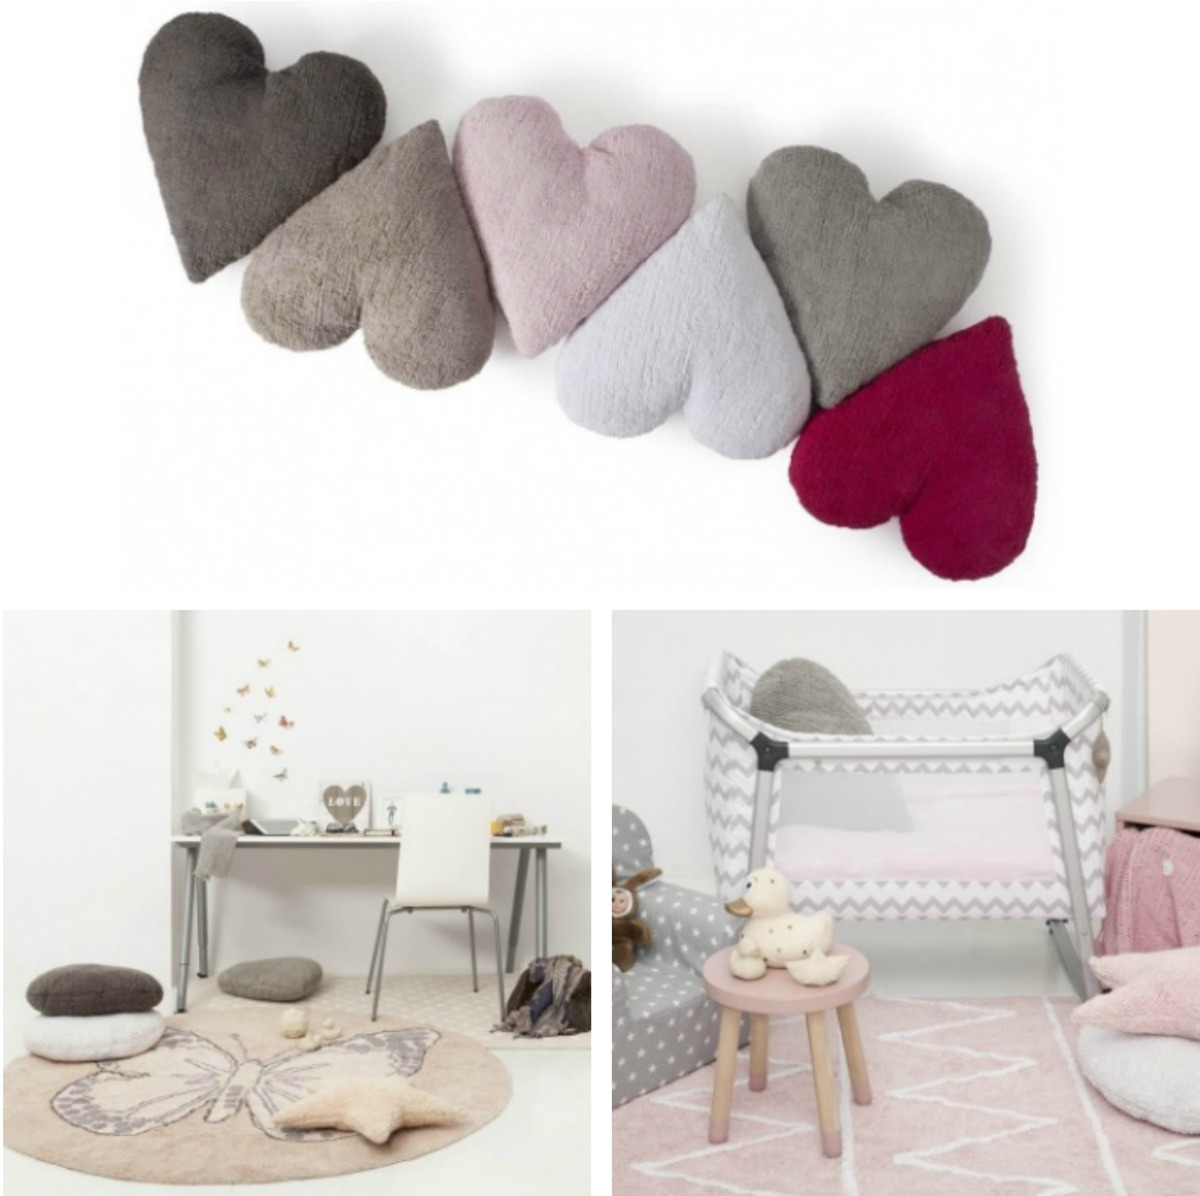 Valentine's Day Gift Ideas For New Parents